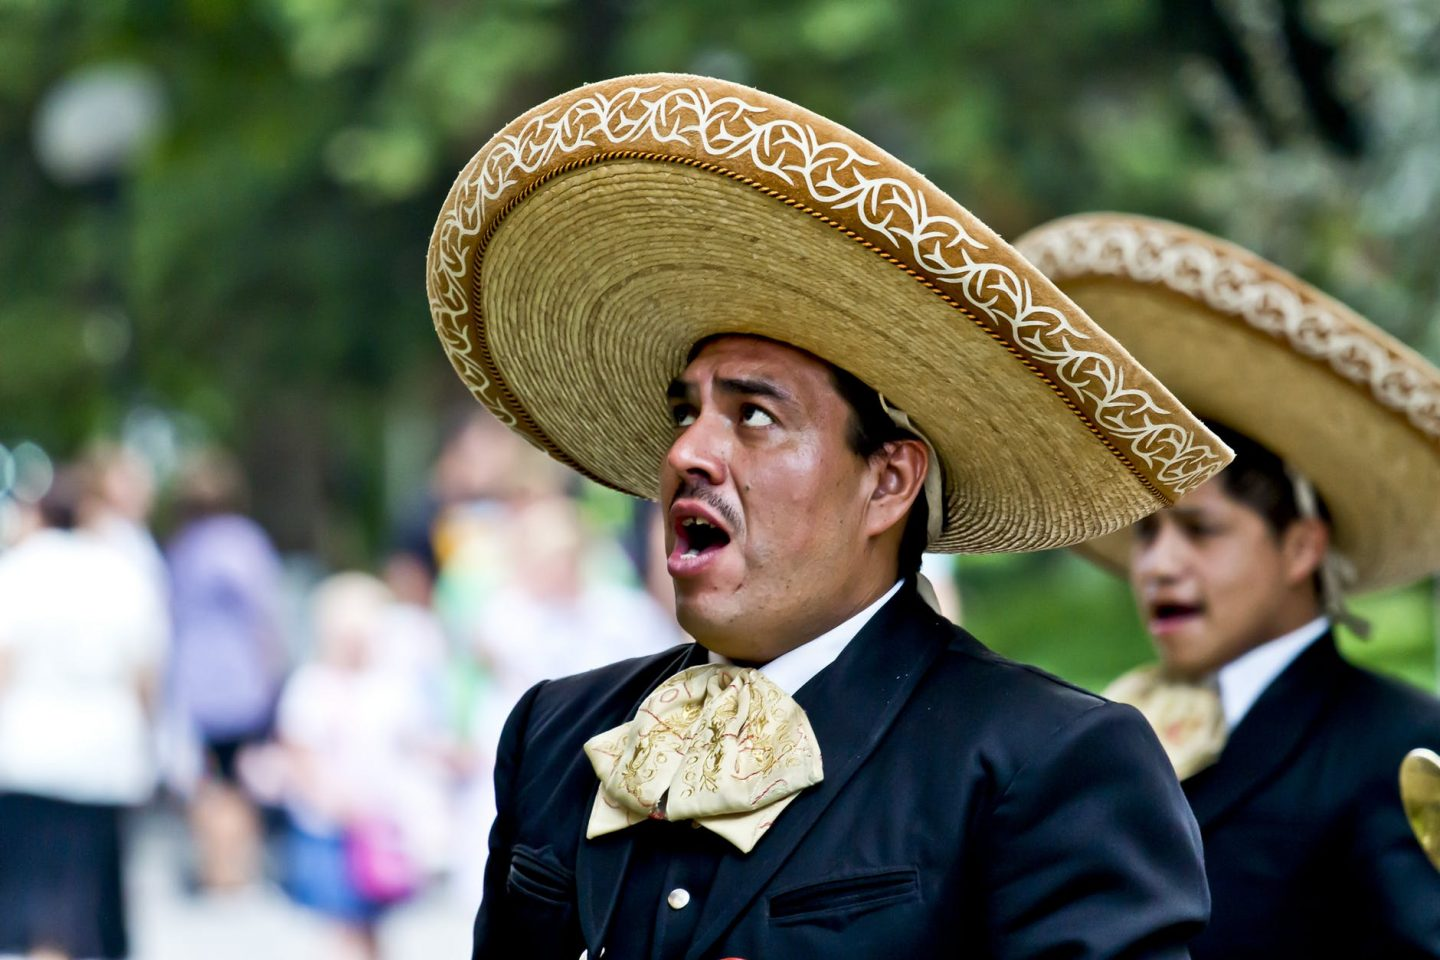 Mariachi singers with black suits and large sombreros.